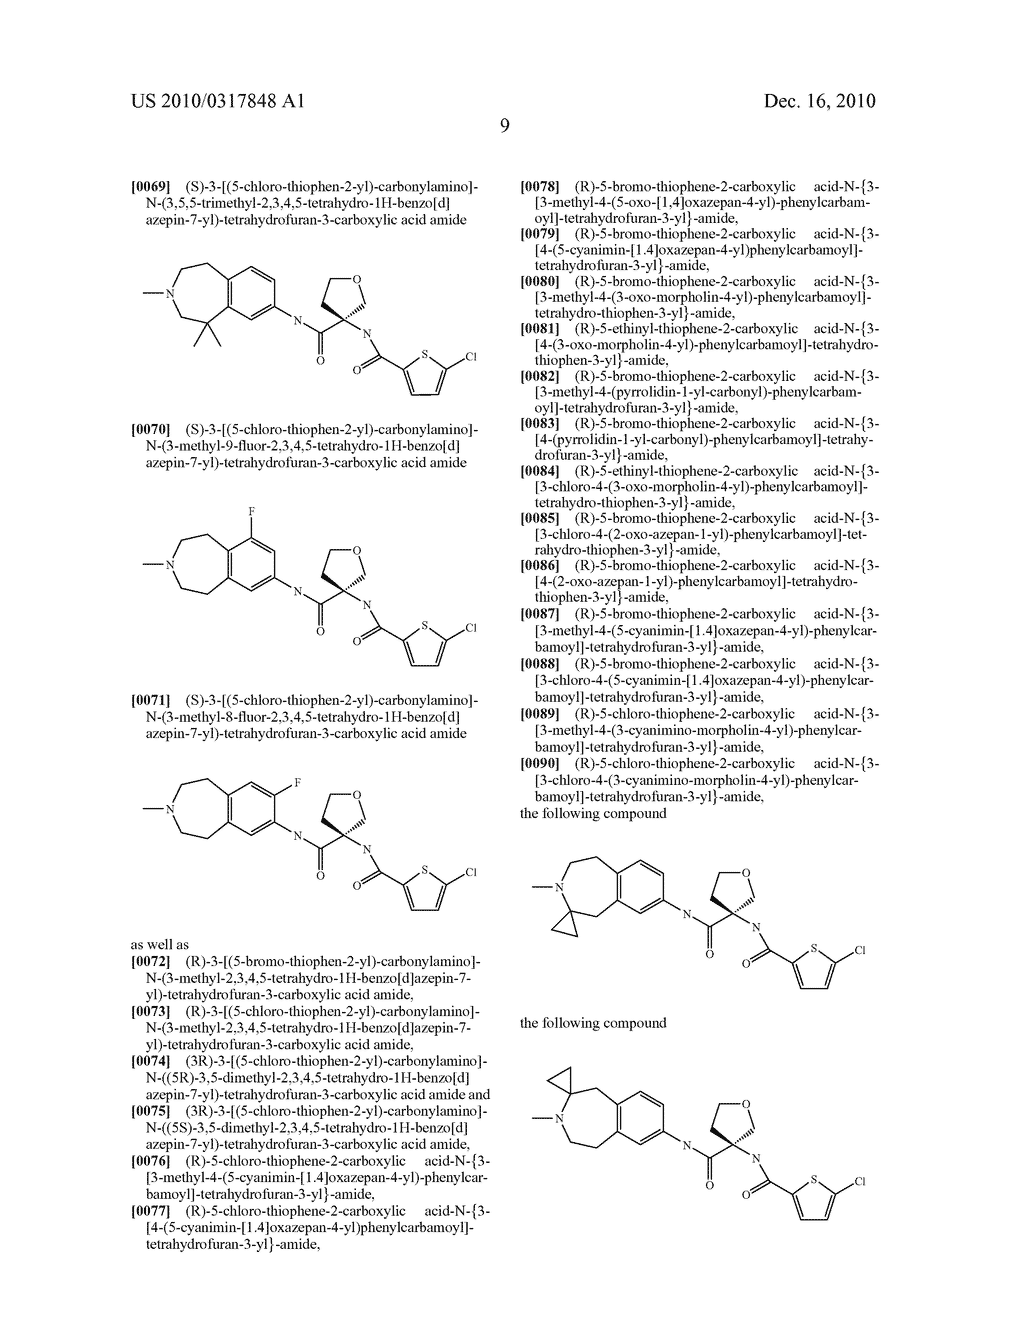 PROCESS FOR THE SYNTHESIS OF DERIVATIVES OF 3-AMINO-TETRAHYDROFURAN-3-CARBOXYLIC ACID AND USE THEREOF AS MEDICAMENTS - diagram, schematic, and image 14